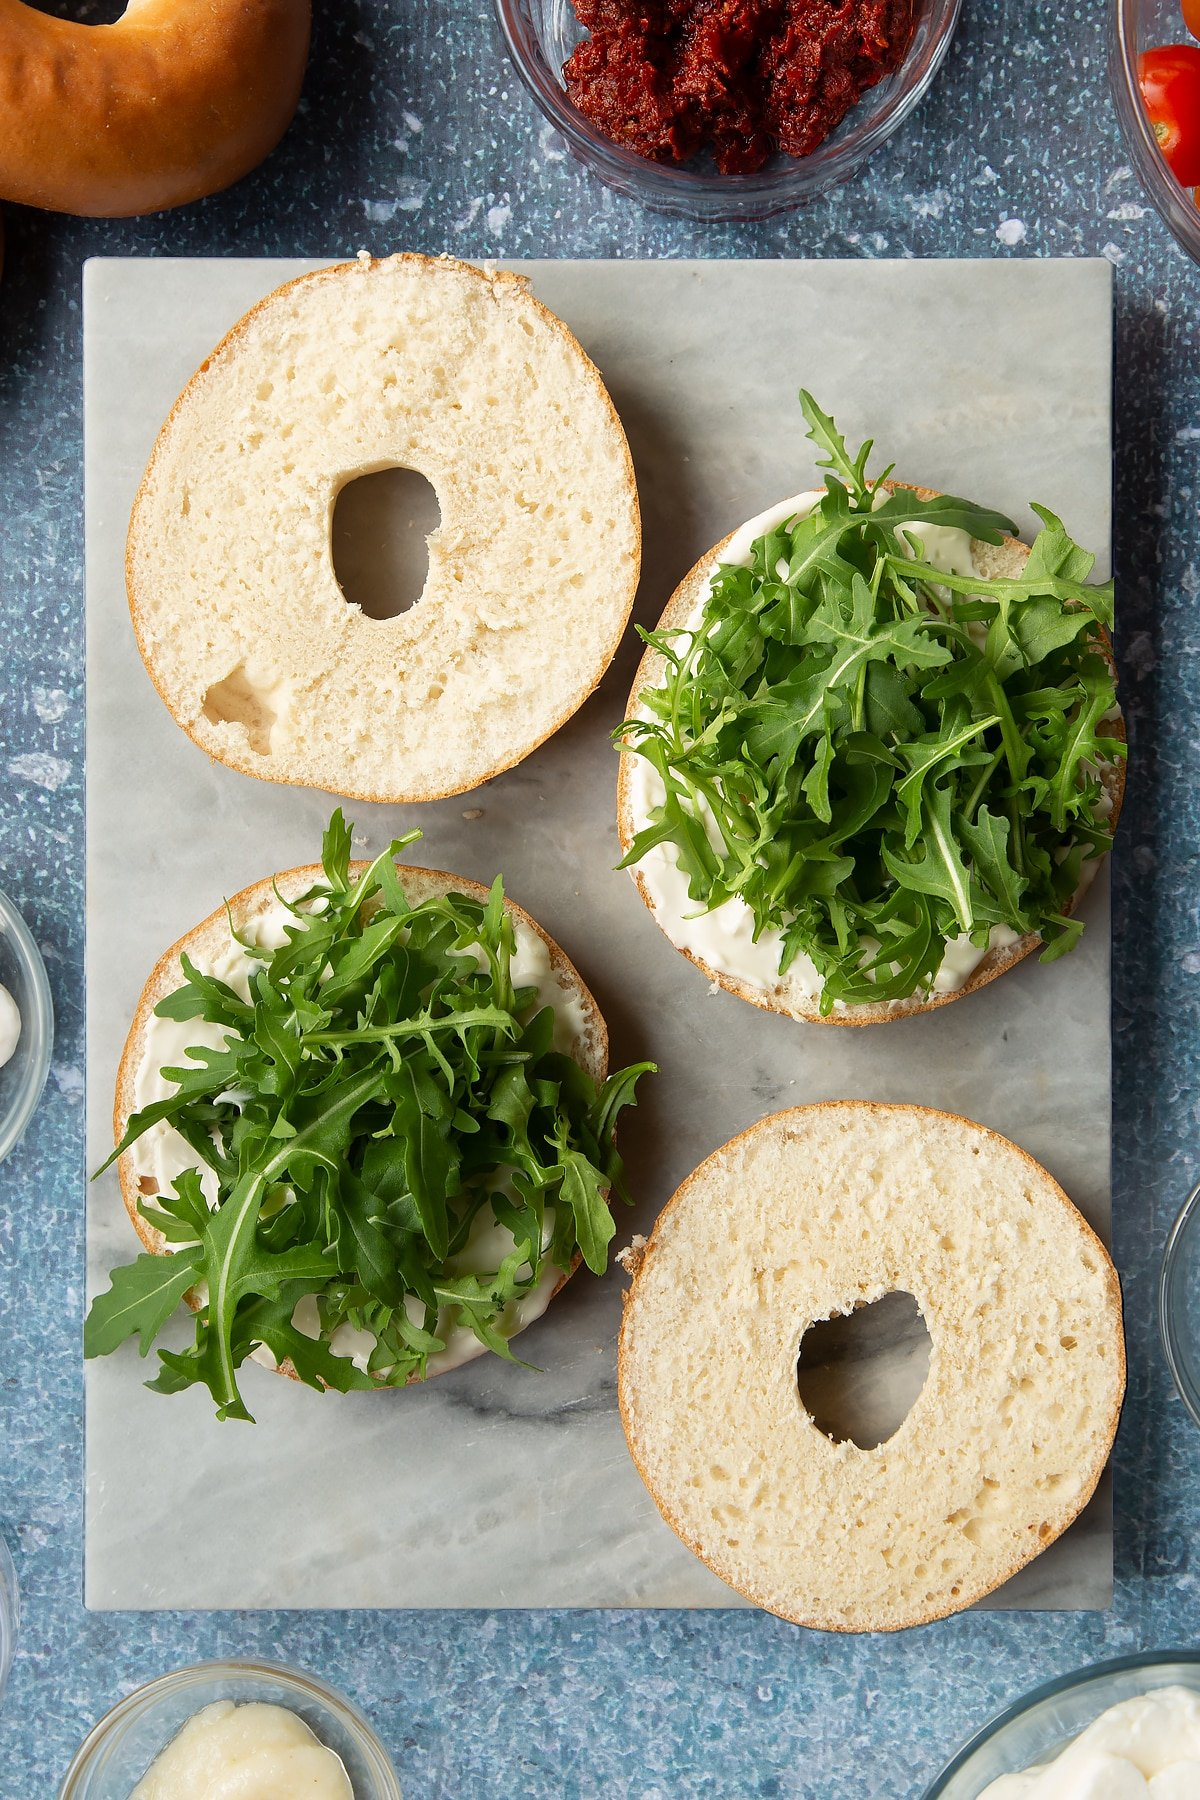 Sliced open bagels on a marble board. Half are spread with mayo and topped with rocket. Ingredients to make halloumi bagels surround the board.